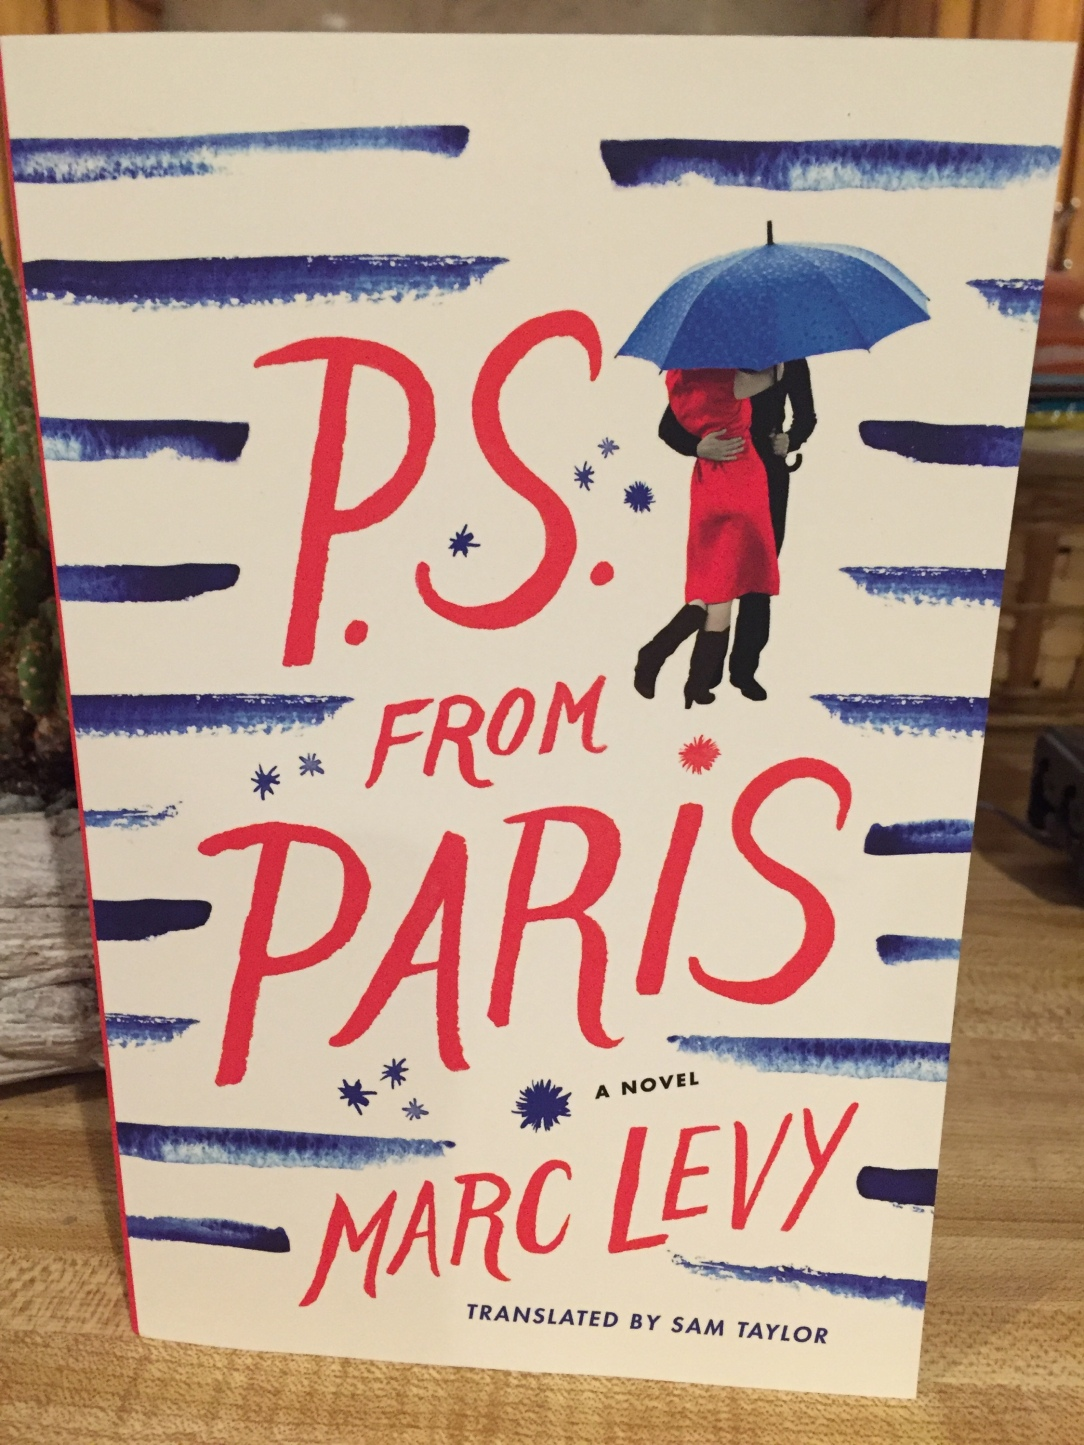 Image result for P.S from paris book images